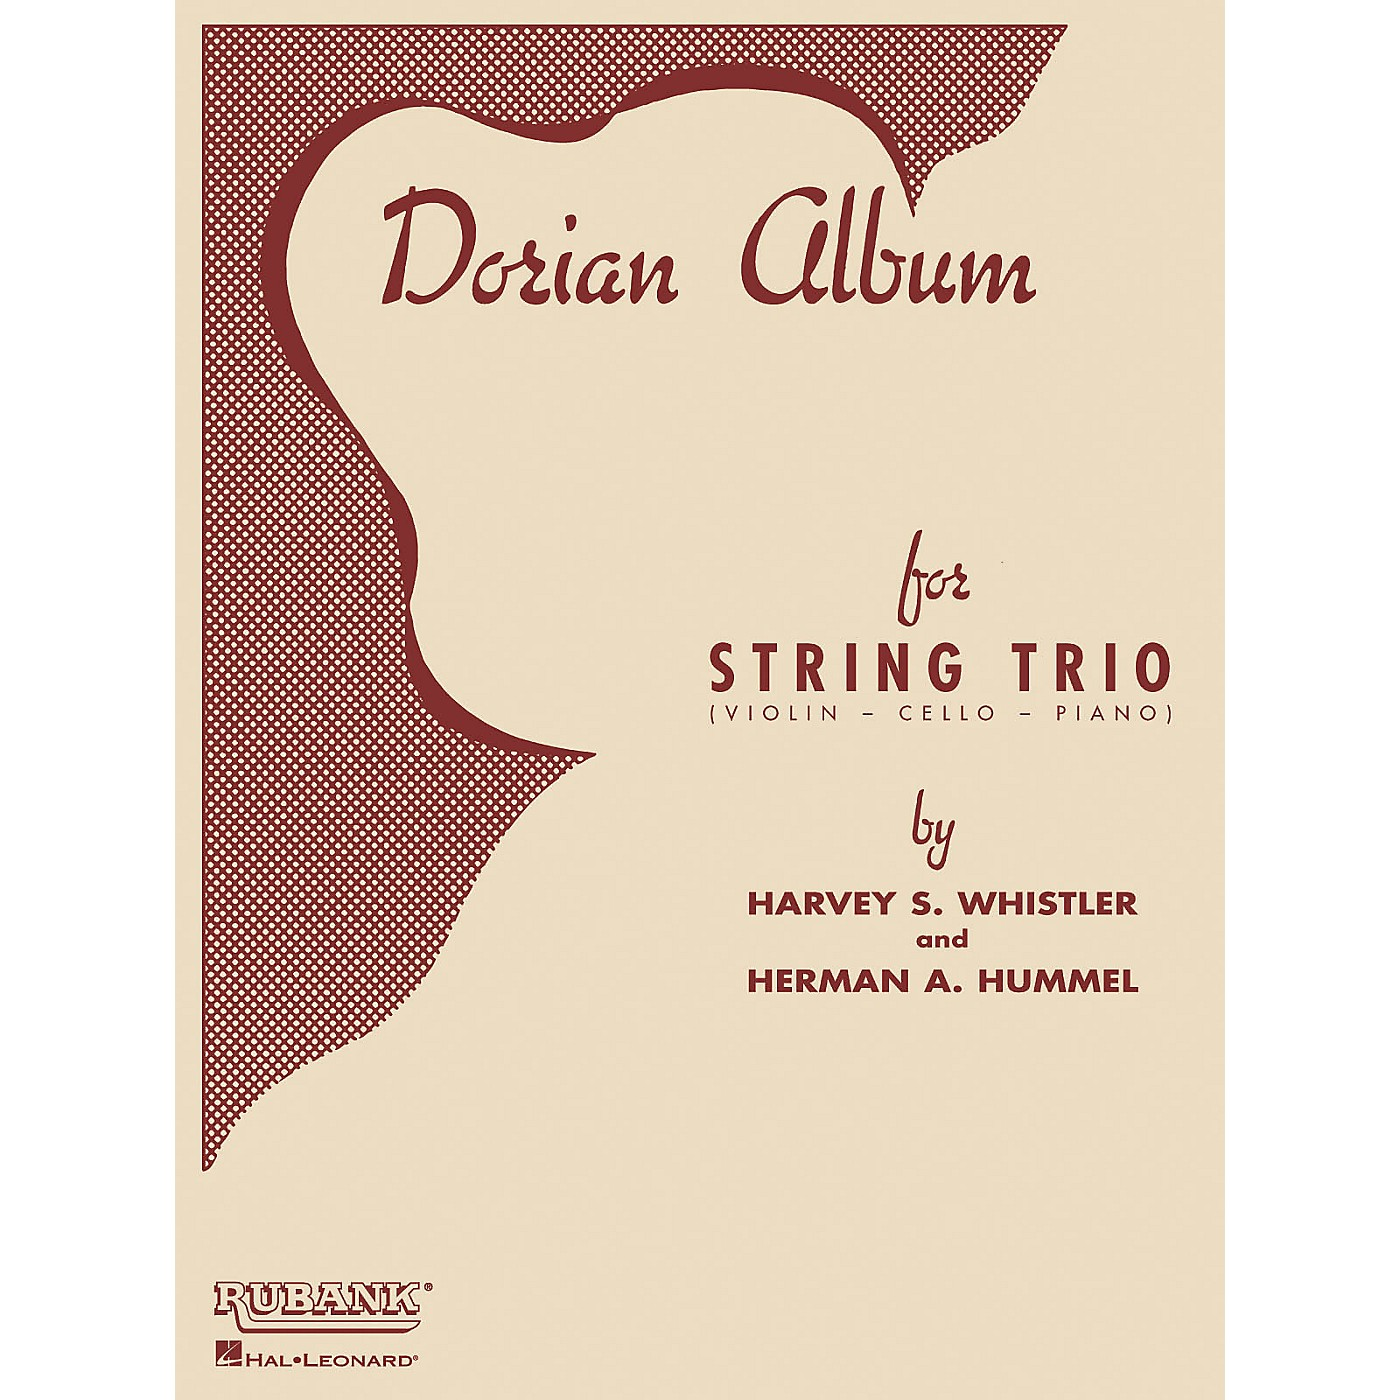 Rubank Publications Dorian Album (Violin, Cello and Piano) Ensemble Collection Series Arranged by Harvey S. Whistler thumbnail